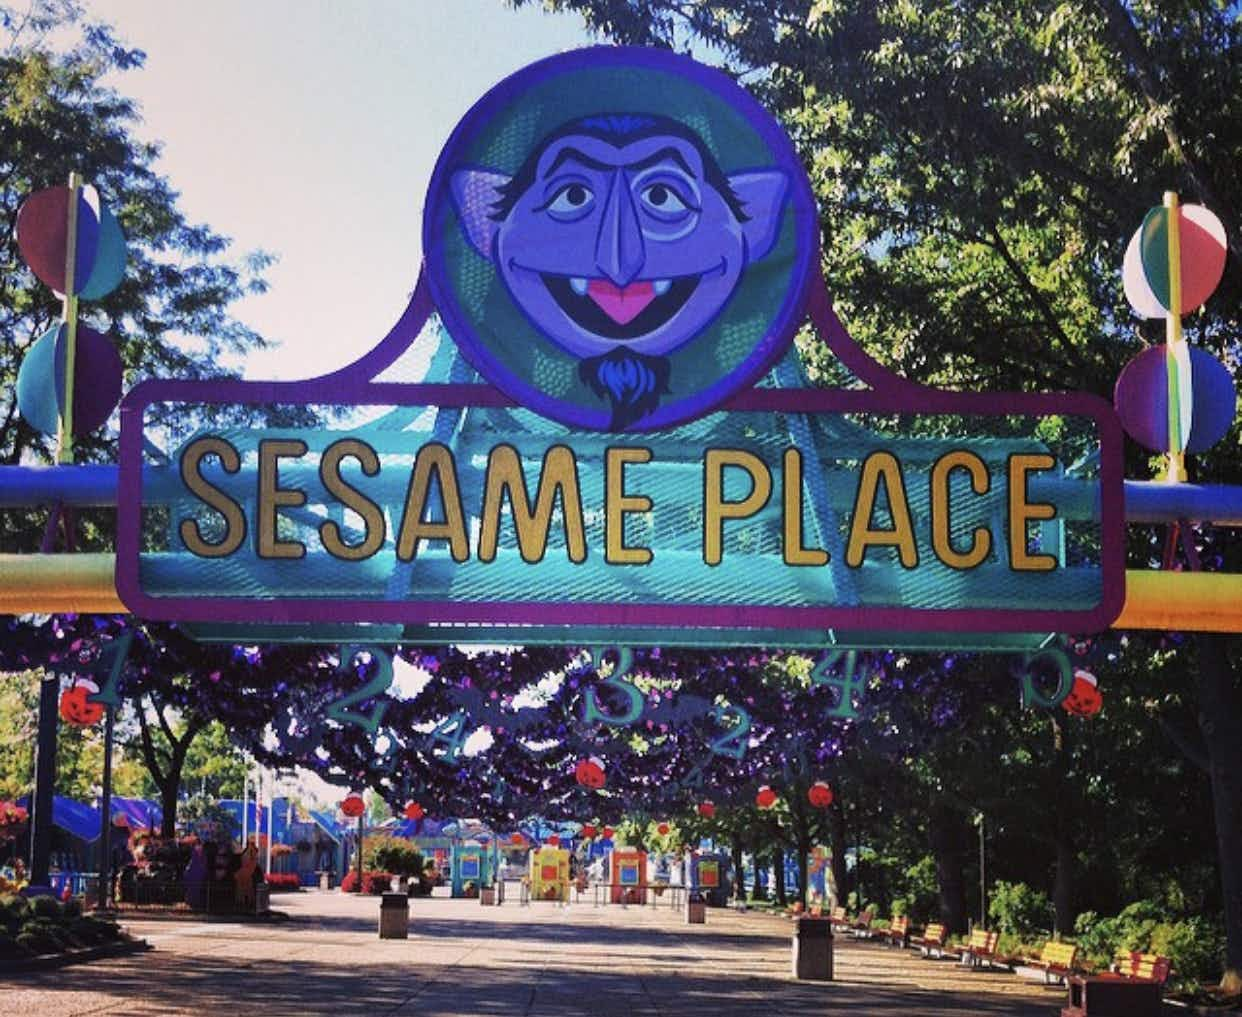 We're counting down the days until the new Sesame Place theme park opens in the US